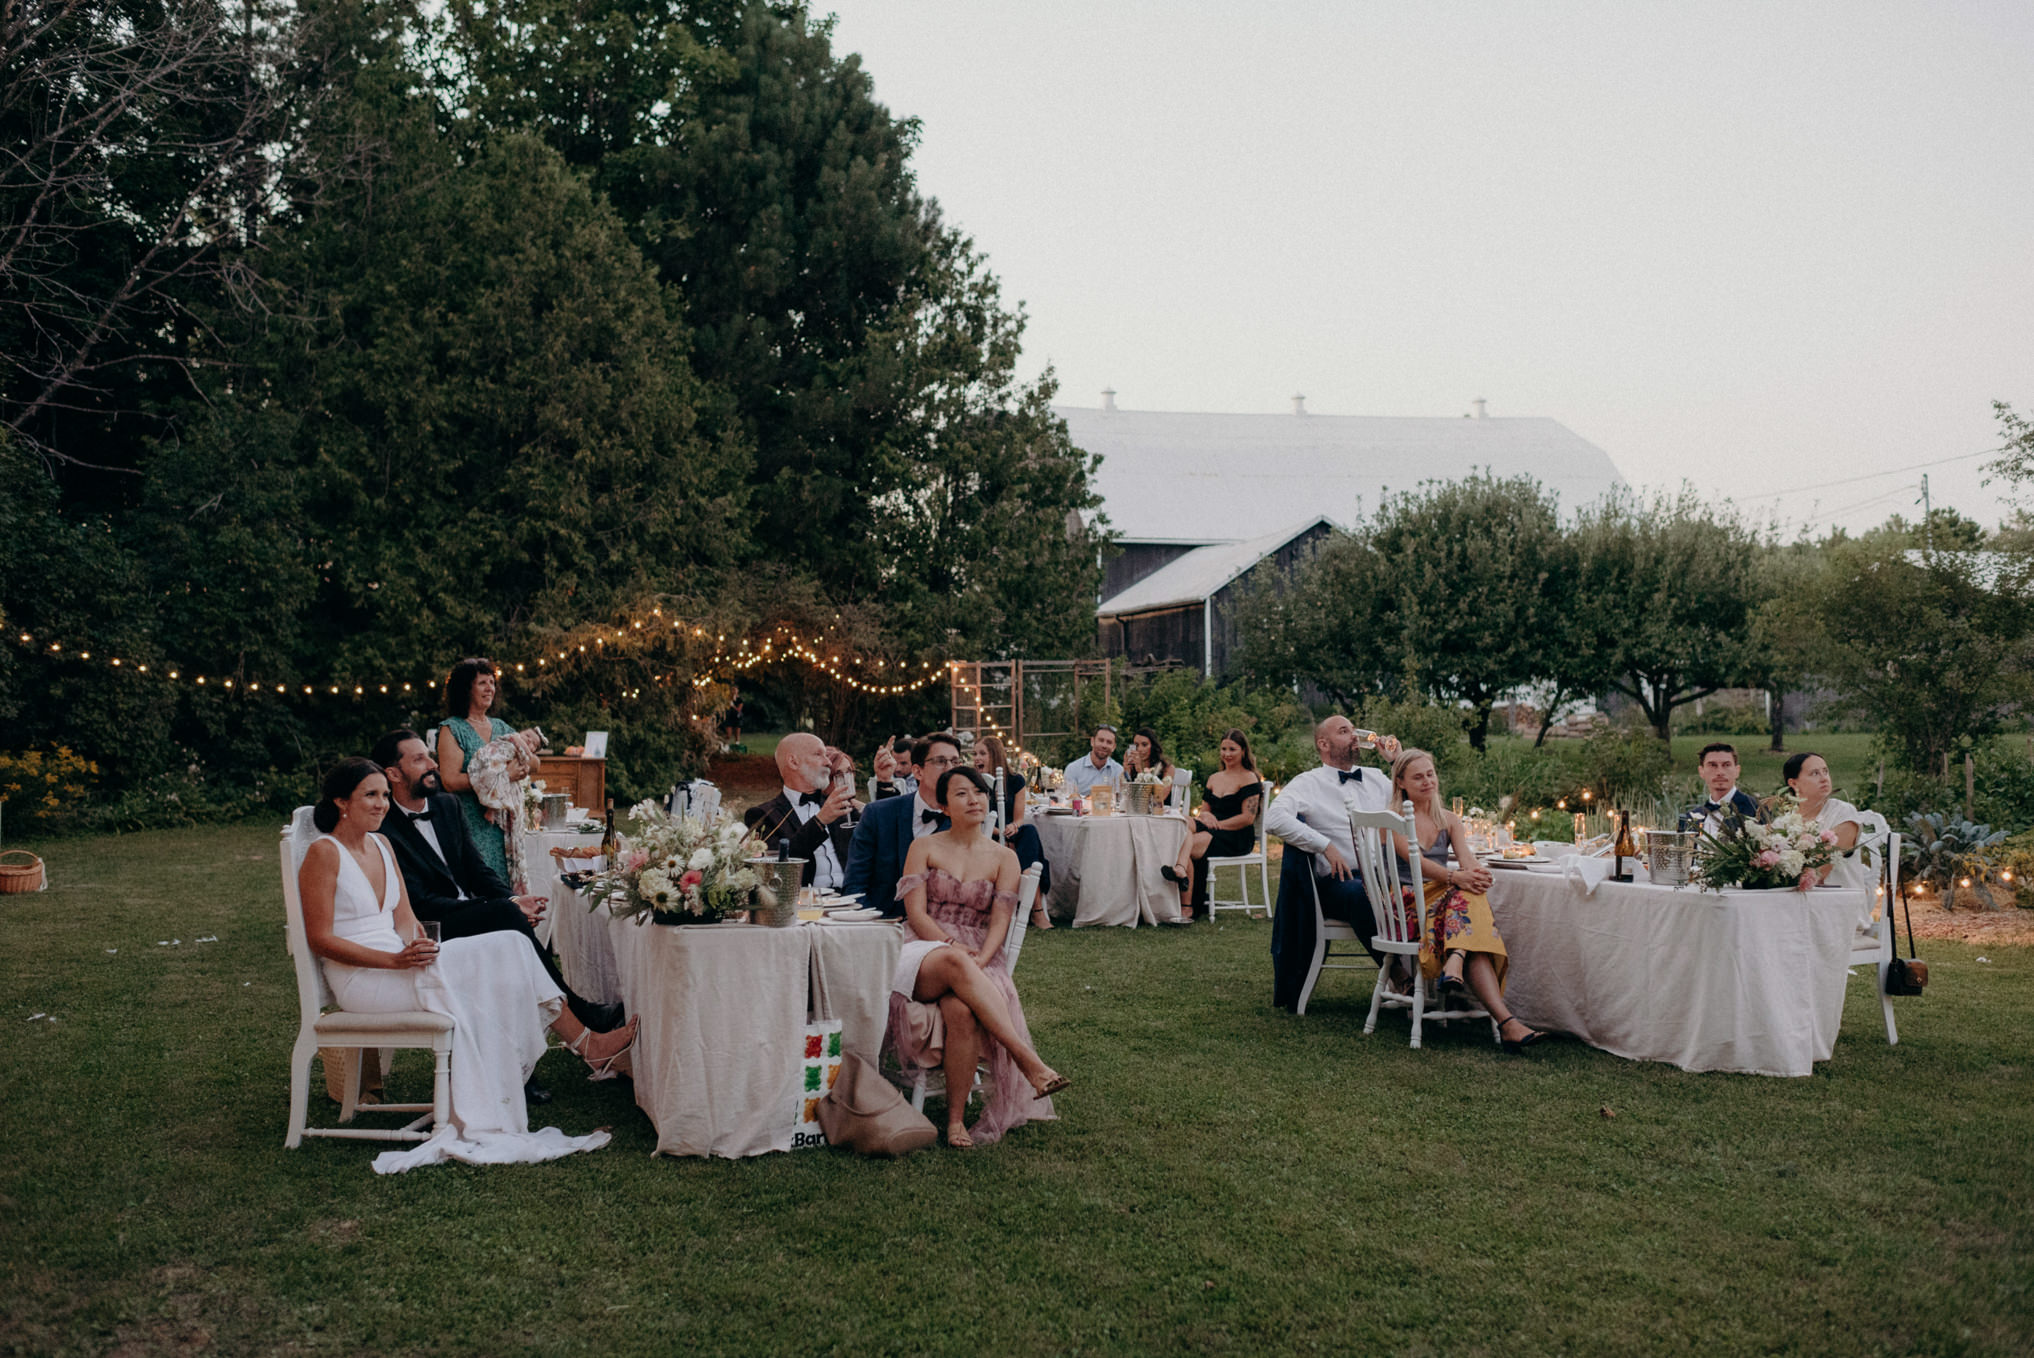 outdoor grass wedding reception on a farm surrounded by trees and string lights